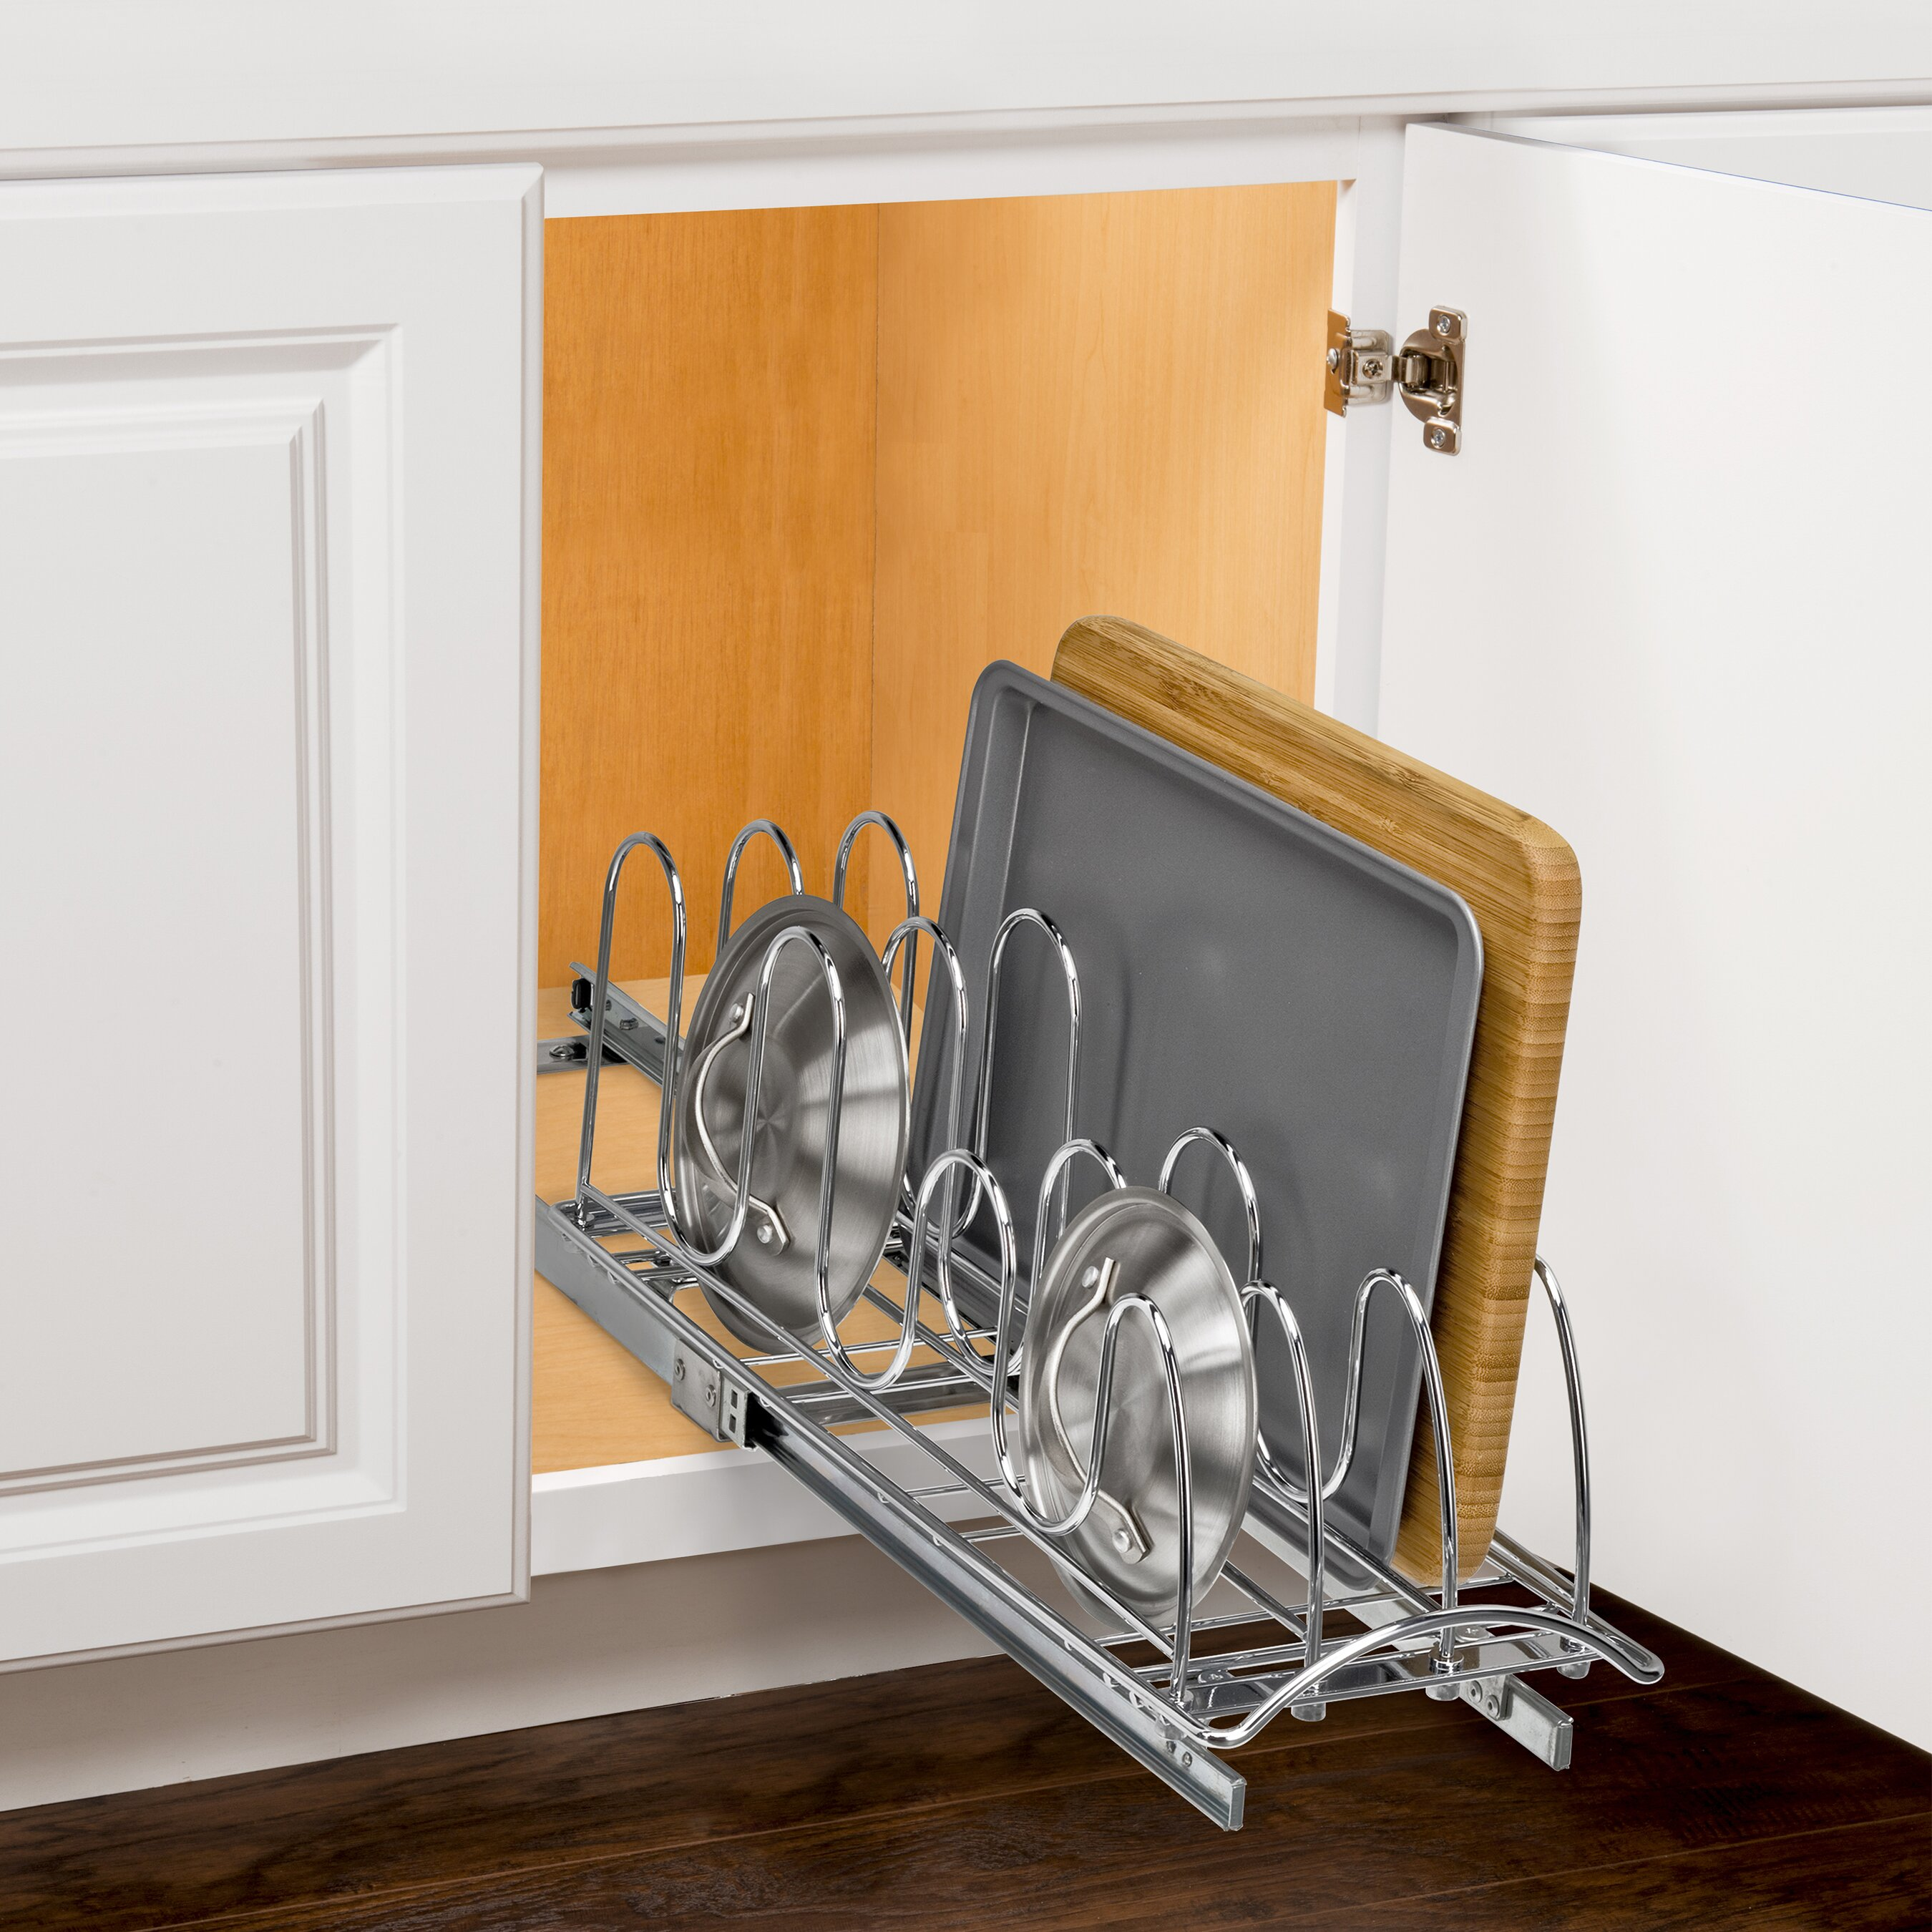 Pull Up Kitchen Cabinets Lynk Lynk Professionalr Roll Out Pan Lid Holder Pull Out Kitchen